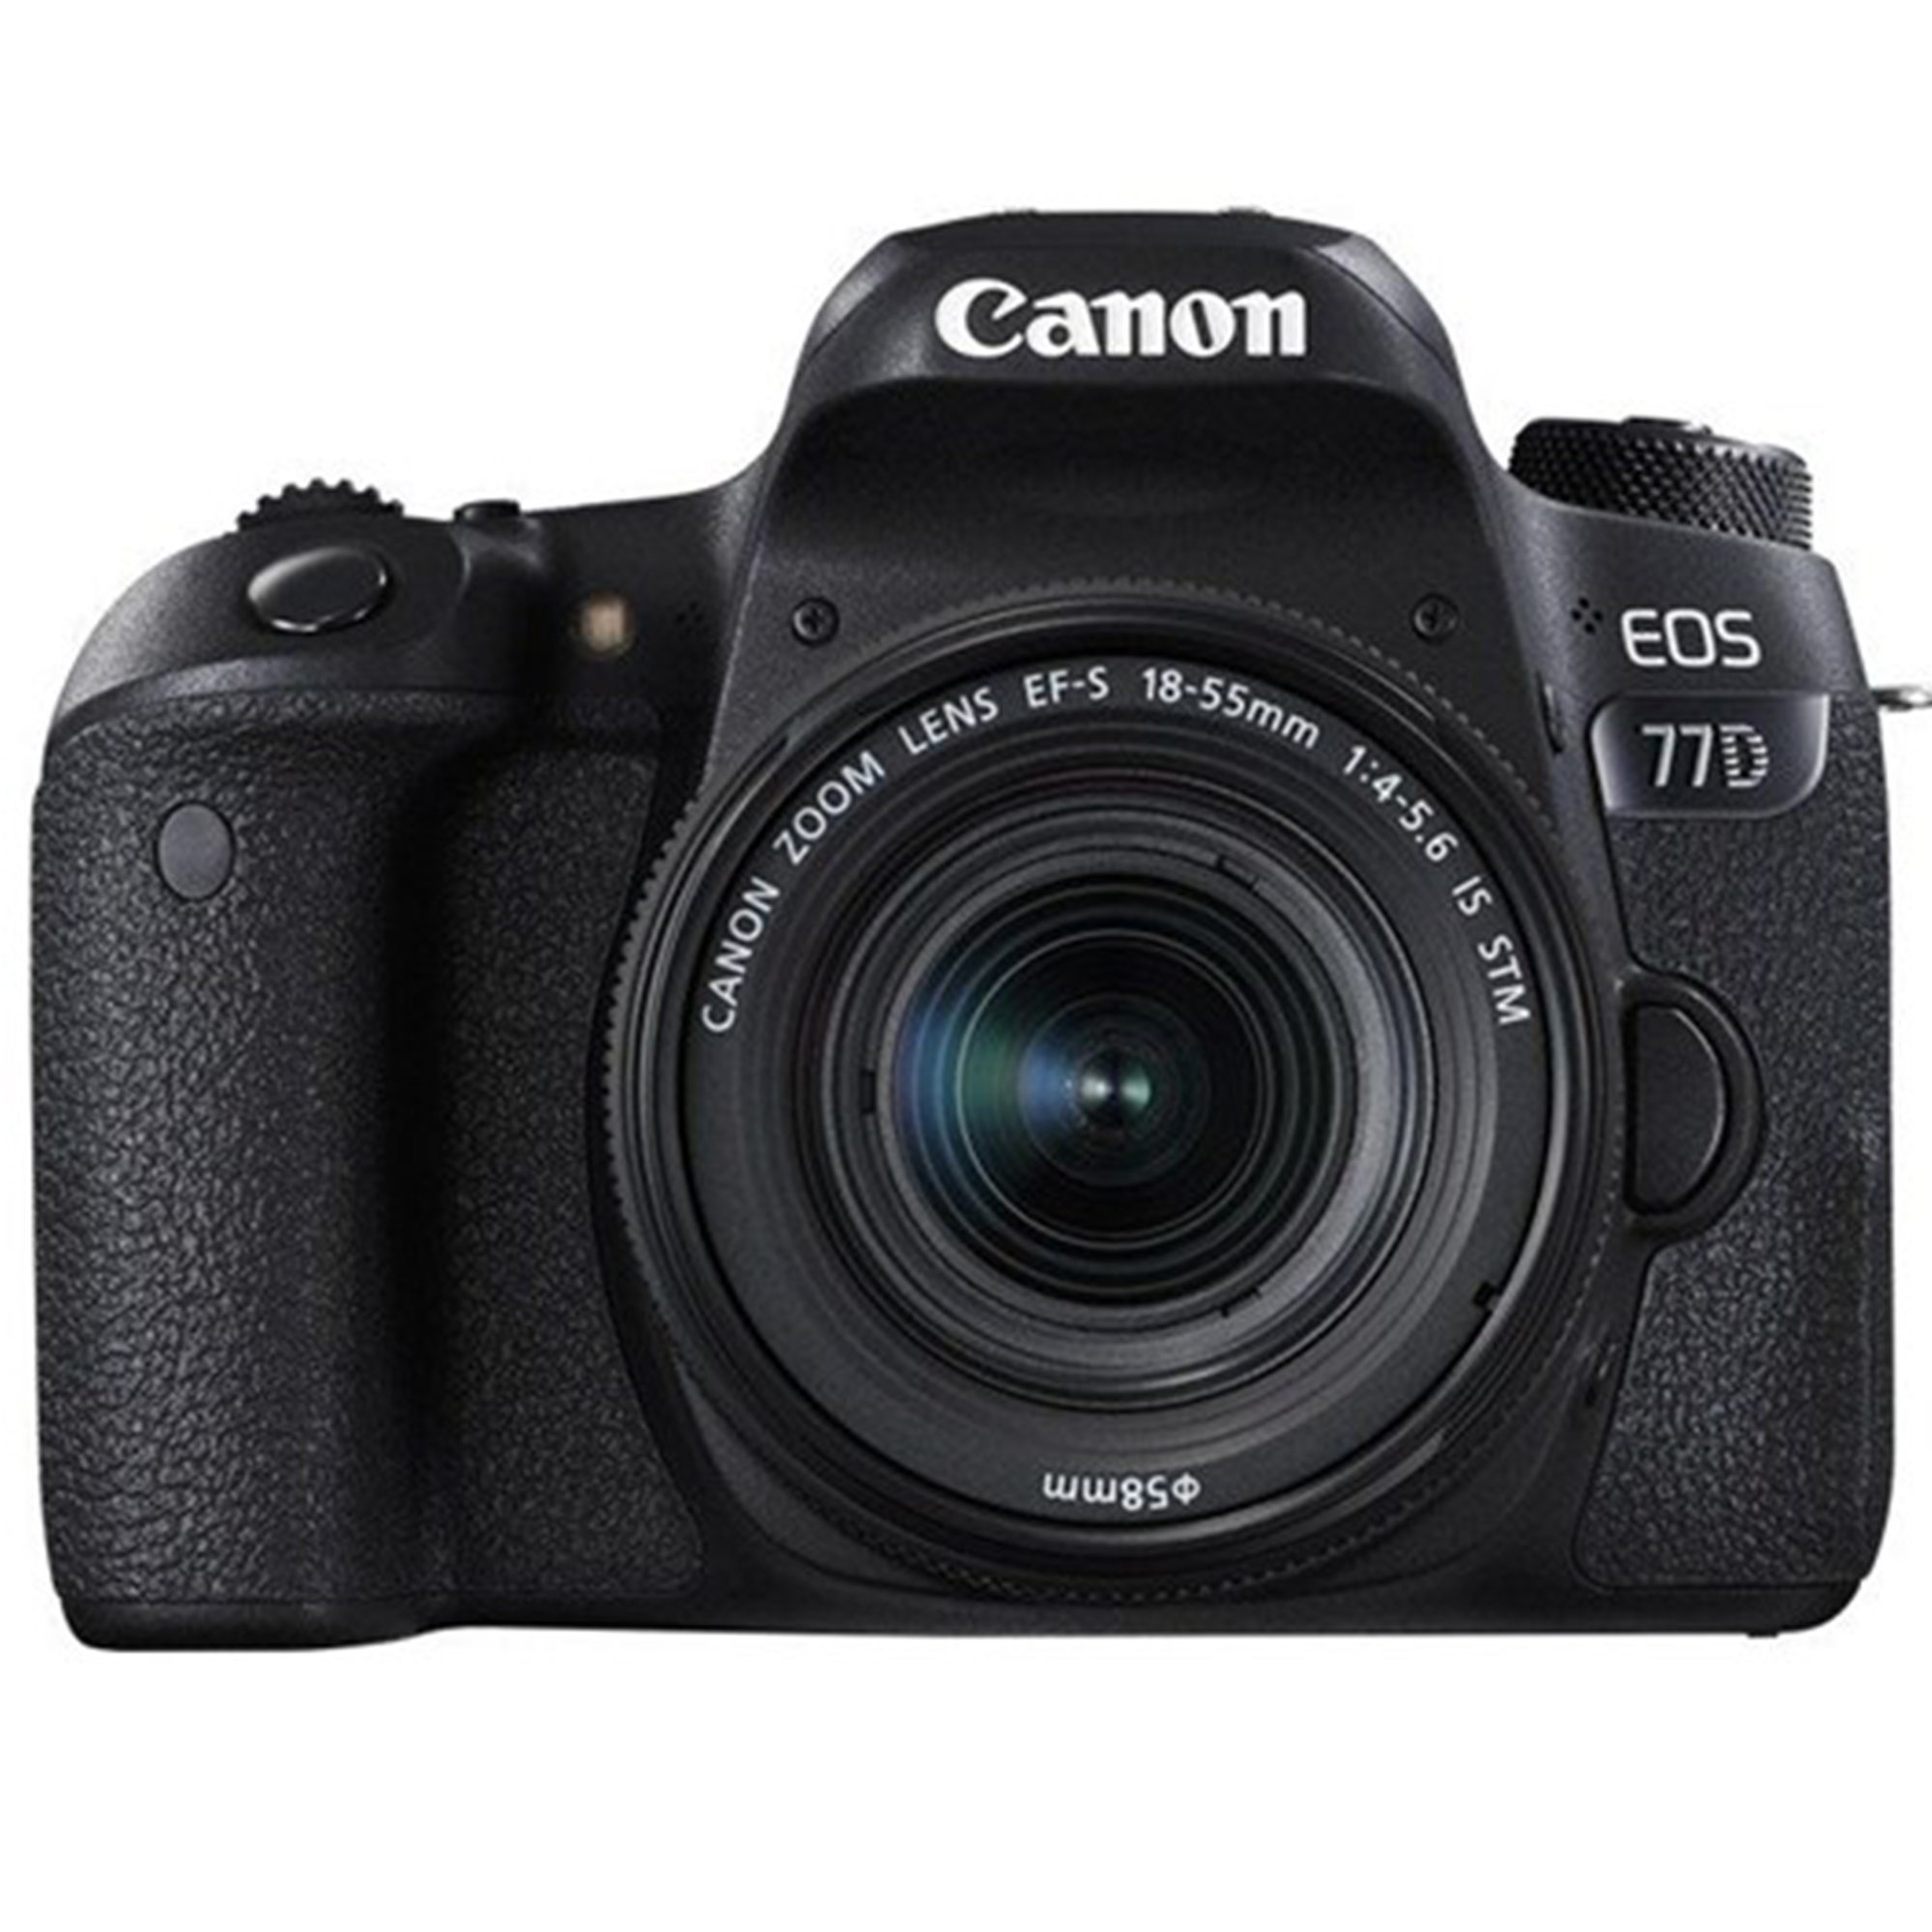 Canon EOS 77D DSLR Camera with 18-55mm Lens +Free Gift Vanguard 203 AB Tripod & 8 GB Memory Card